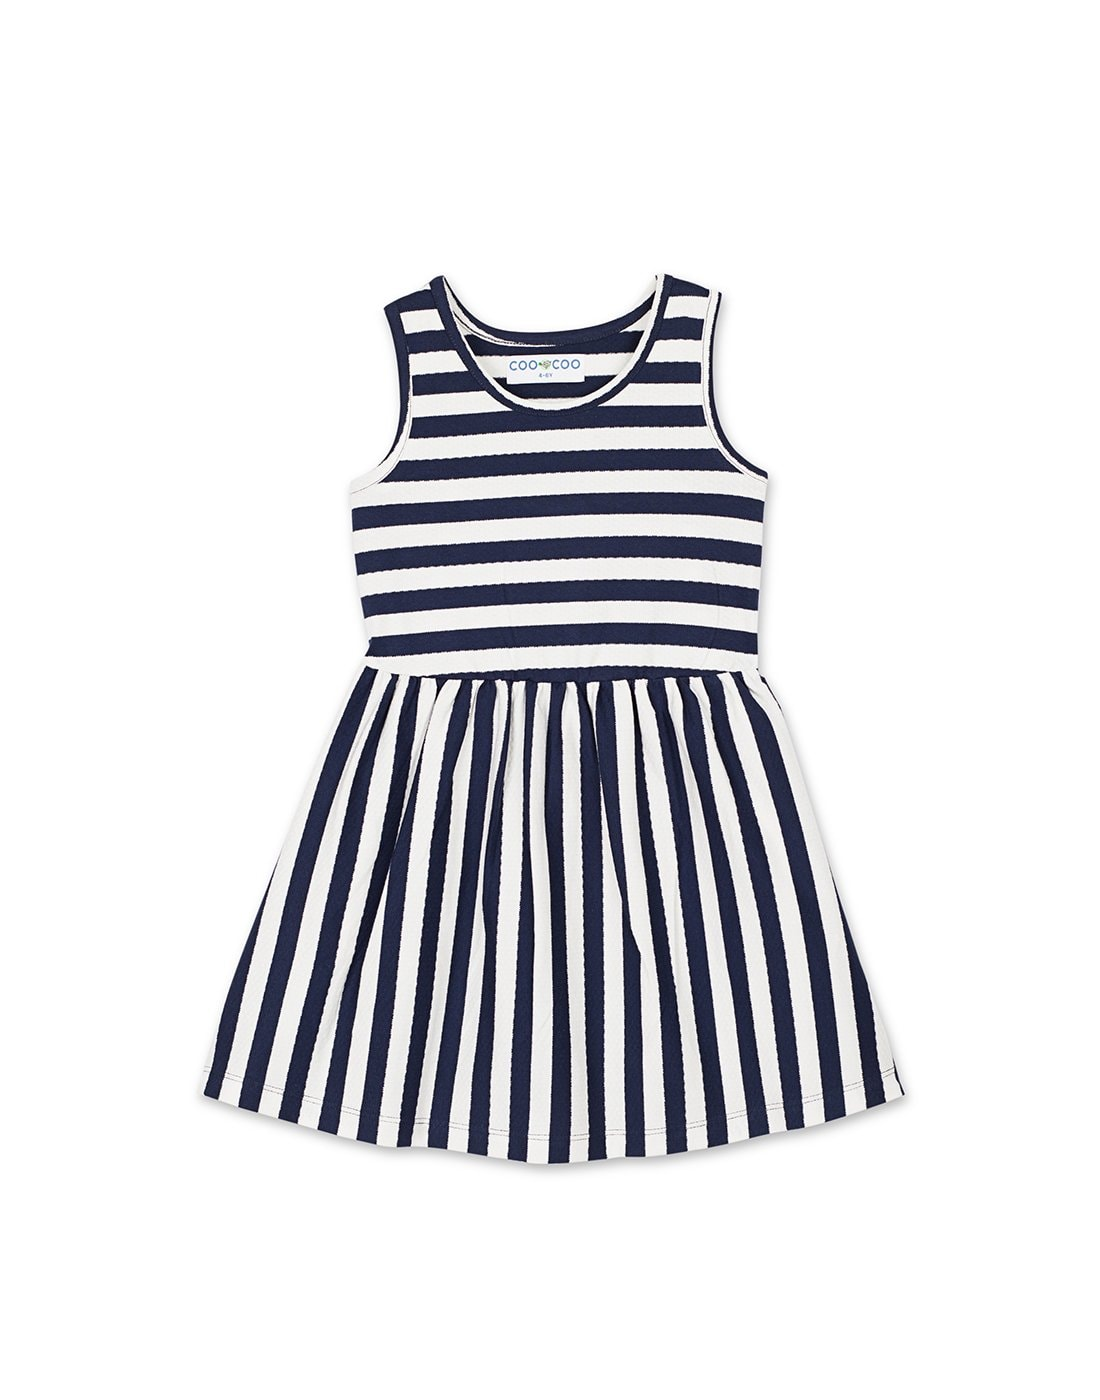 Navy & White Stripe Dress